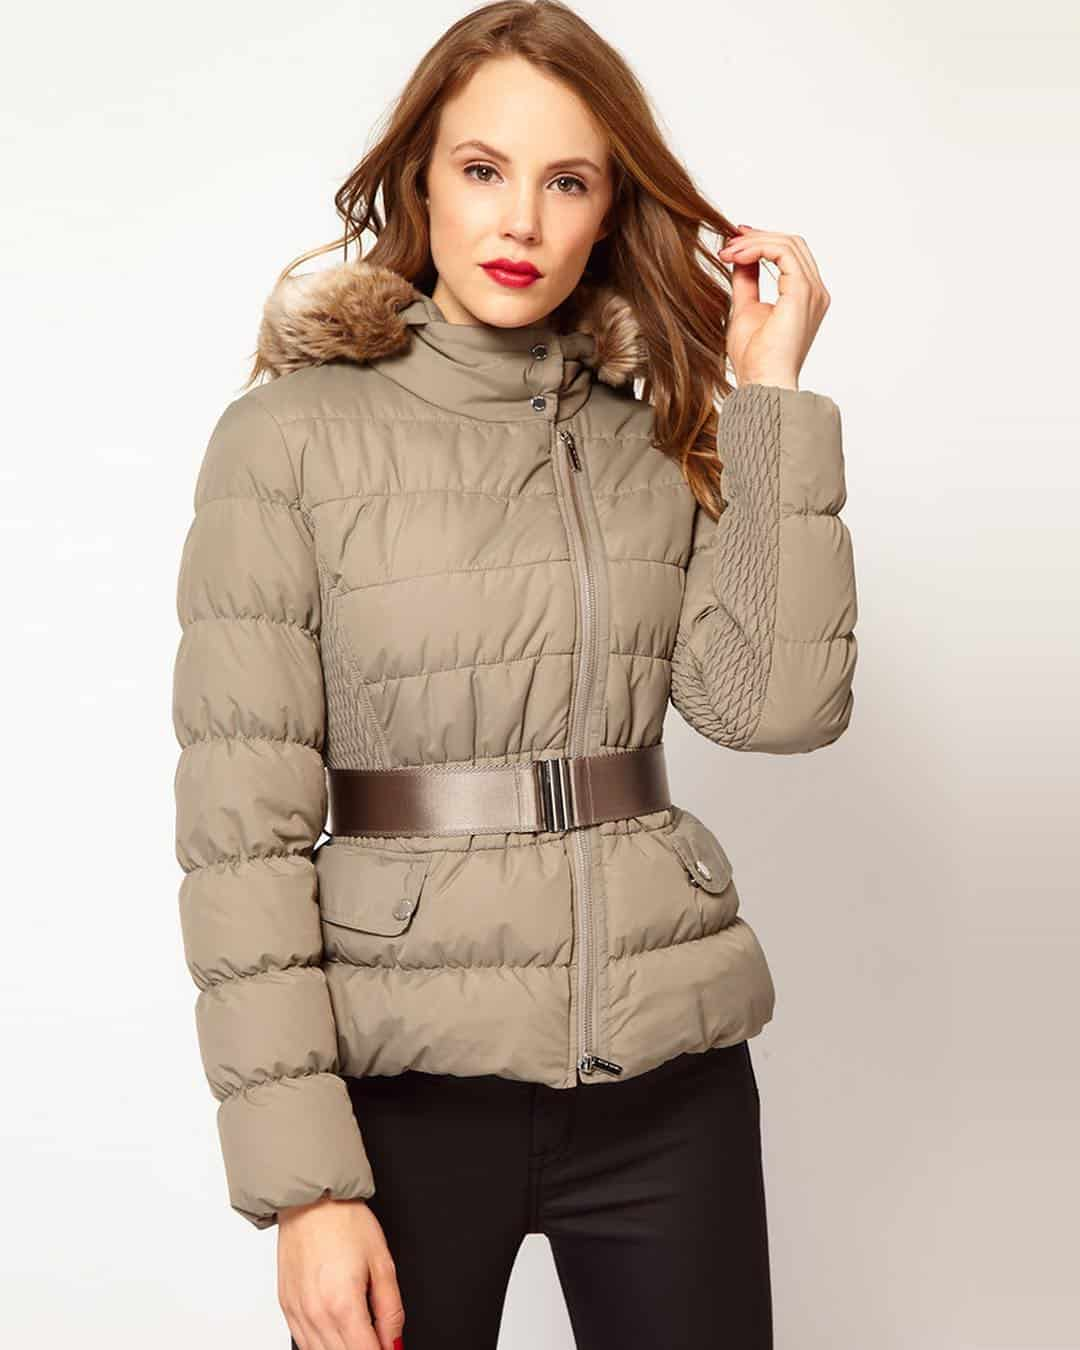 Elegance of the down jackets for women 2022